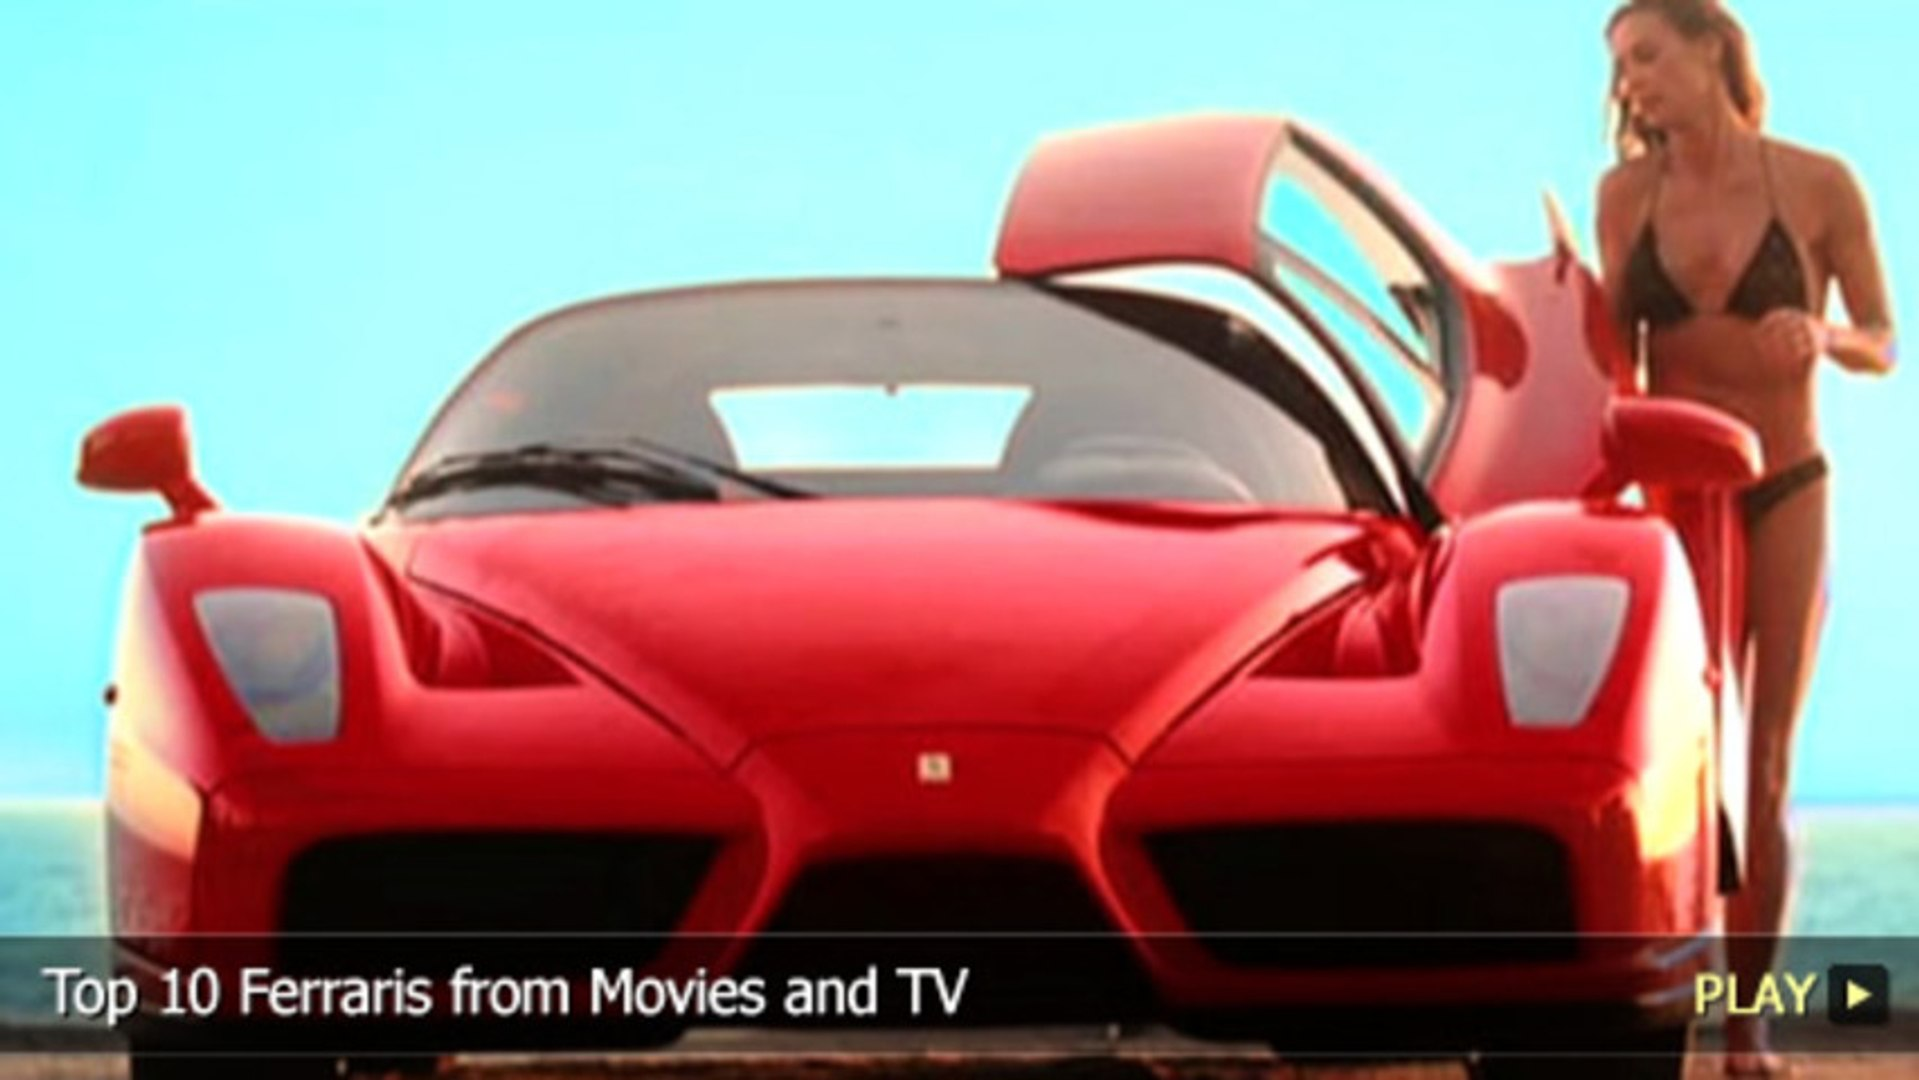 Top 10 Ferraris from Movies and TV